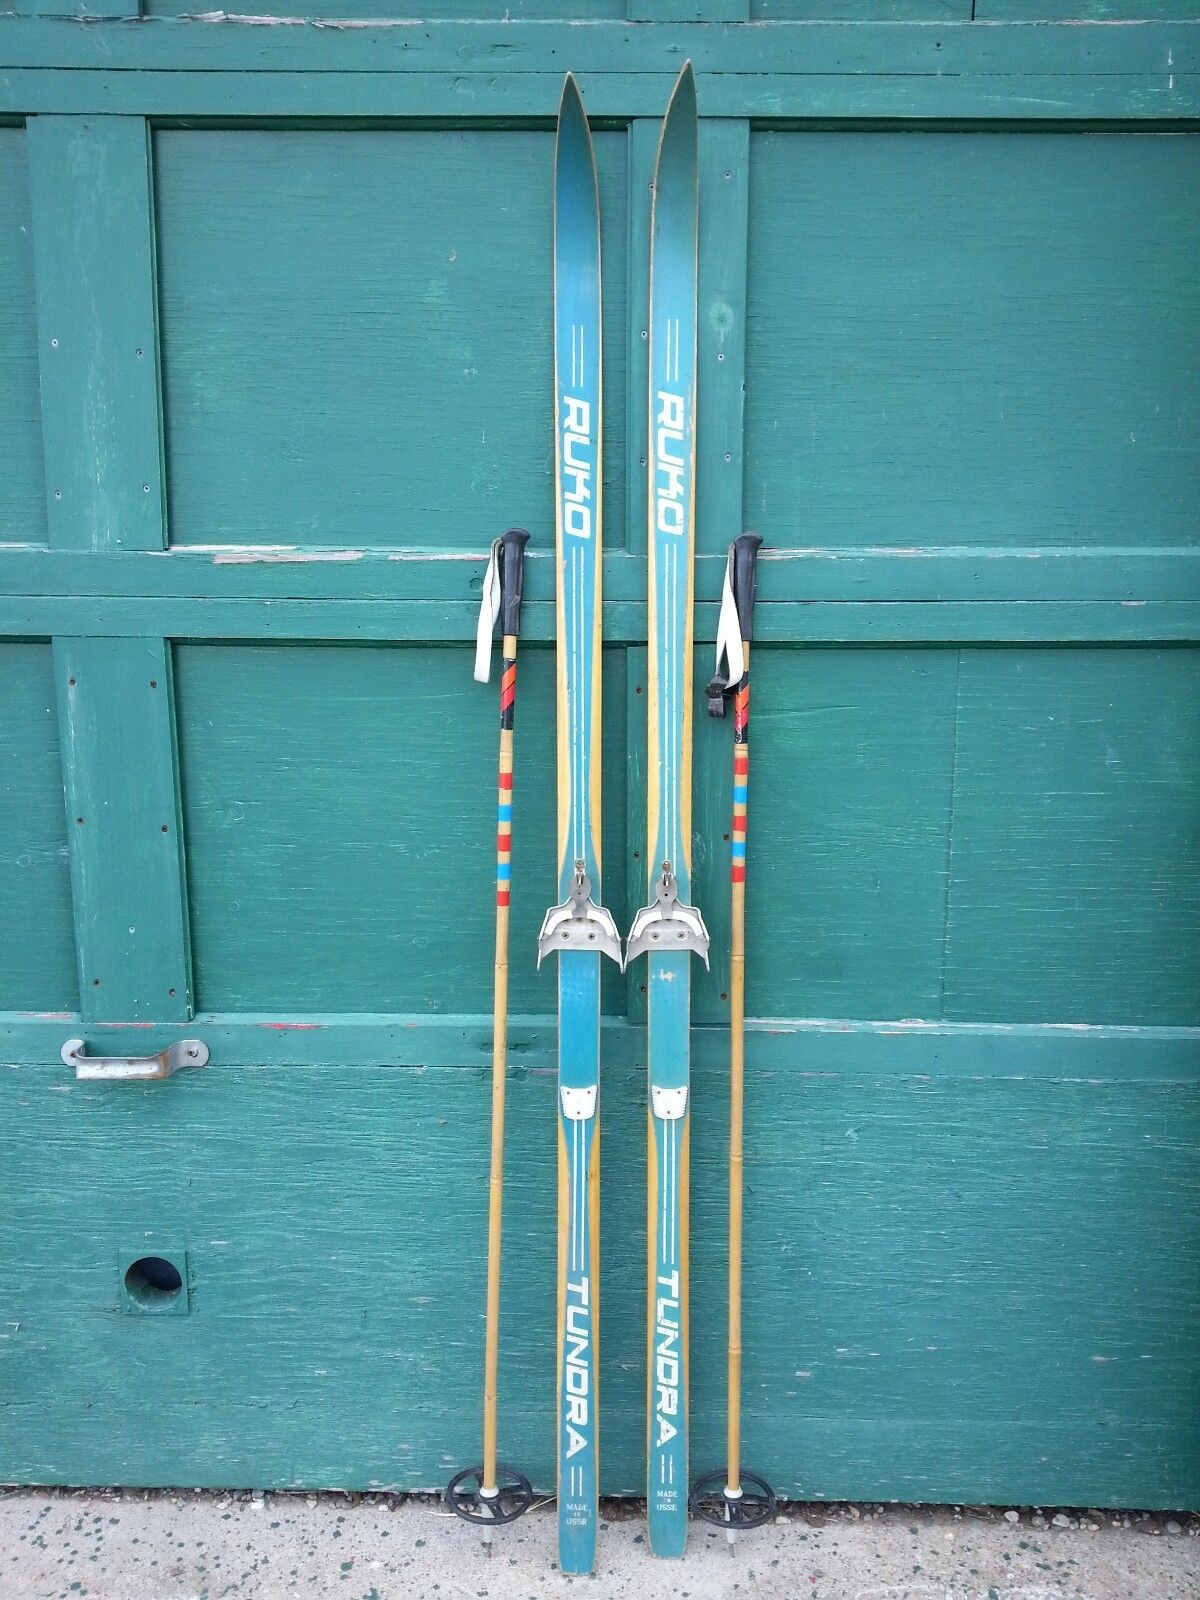 A Very Interesting Vintage Wooden  71  Long Skis blueE Finish Signed RUKO  ultra-low prices